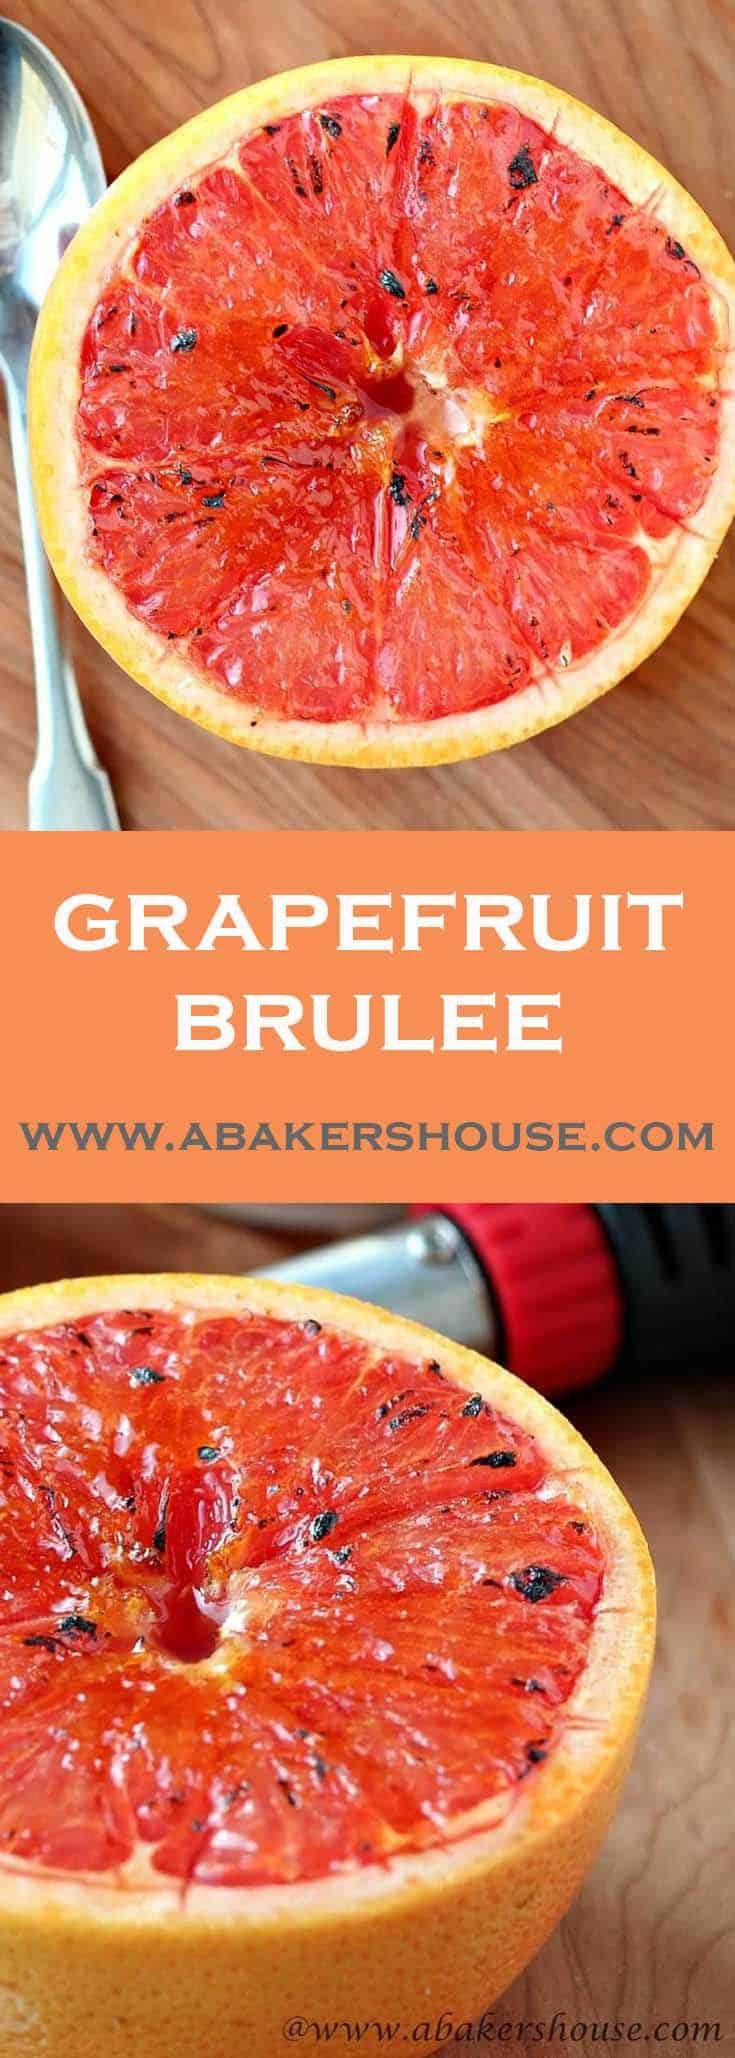 Surprise yourself by loving this healthy dessert-- Grapefruit Brulee fancies up a fruit to make it fit for an unexpected dessert. #grapefruit #brulee #healthydessert #abakershouse